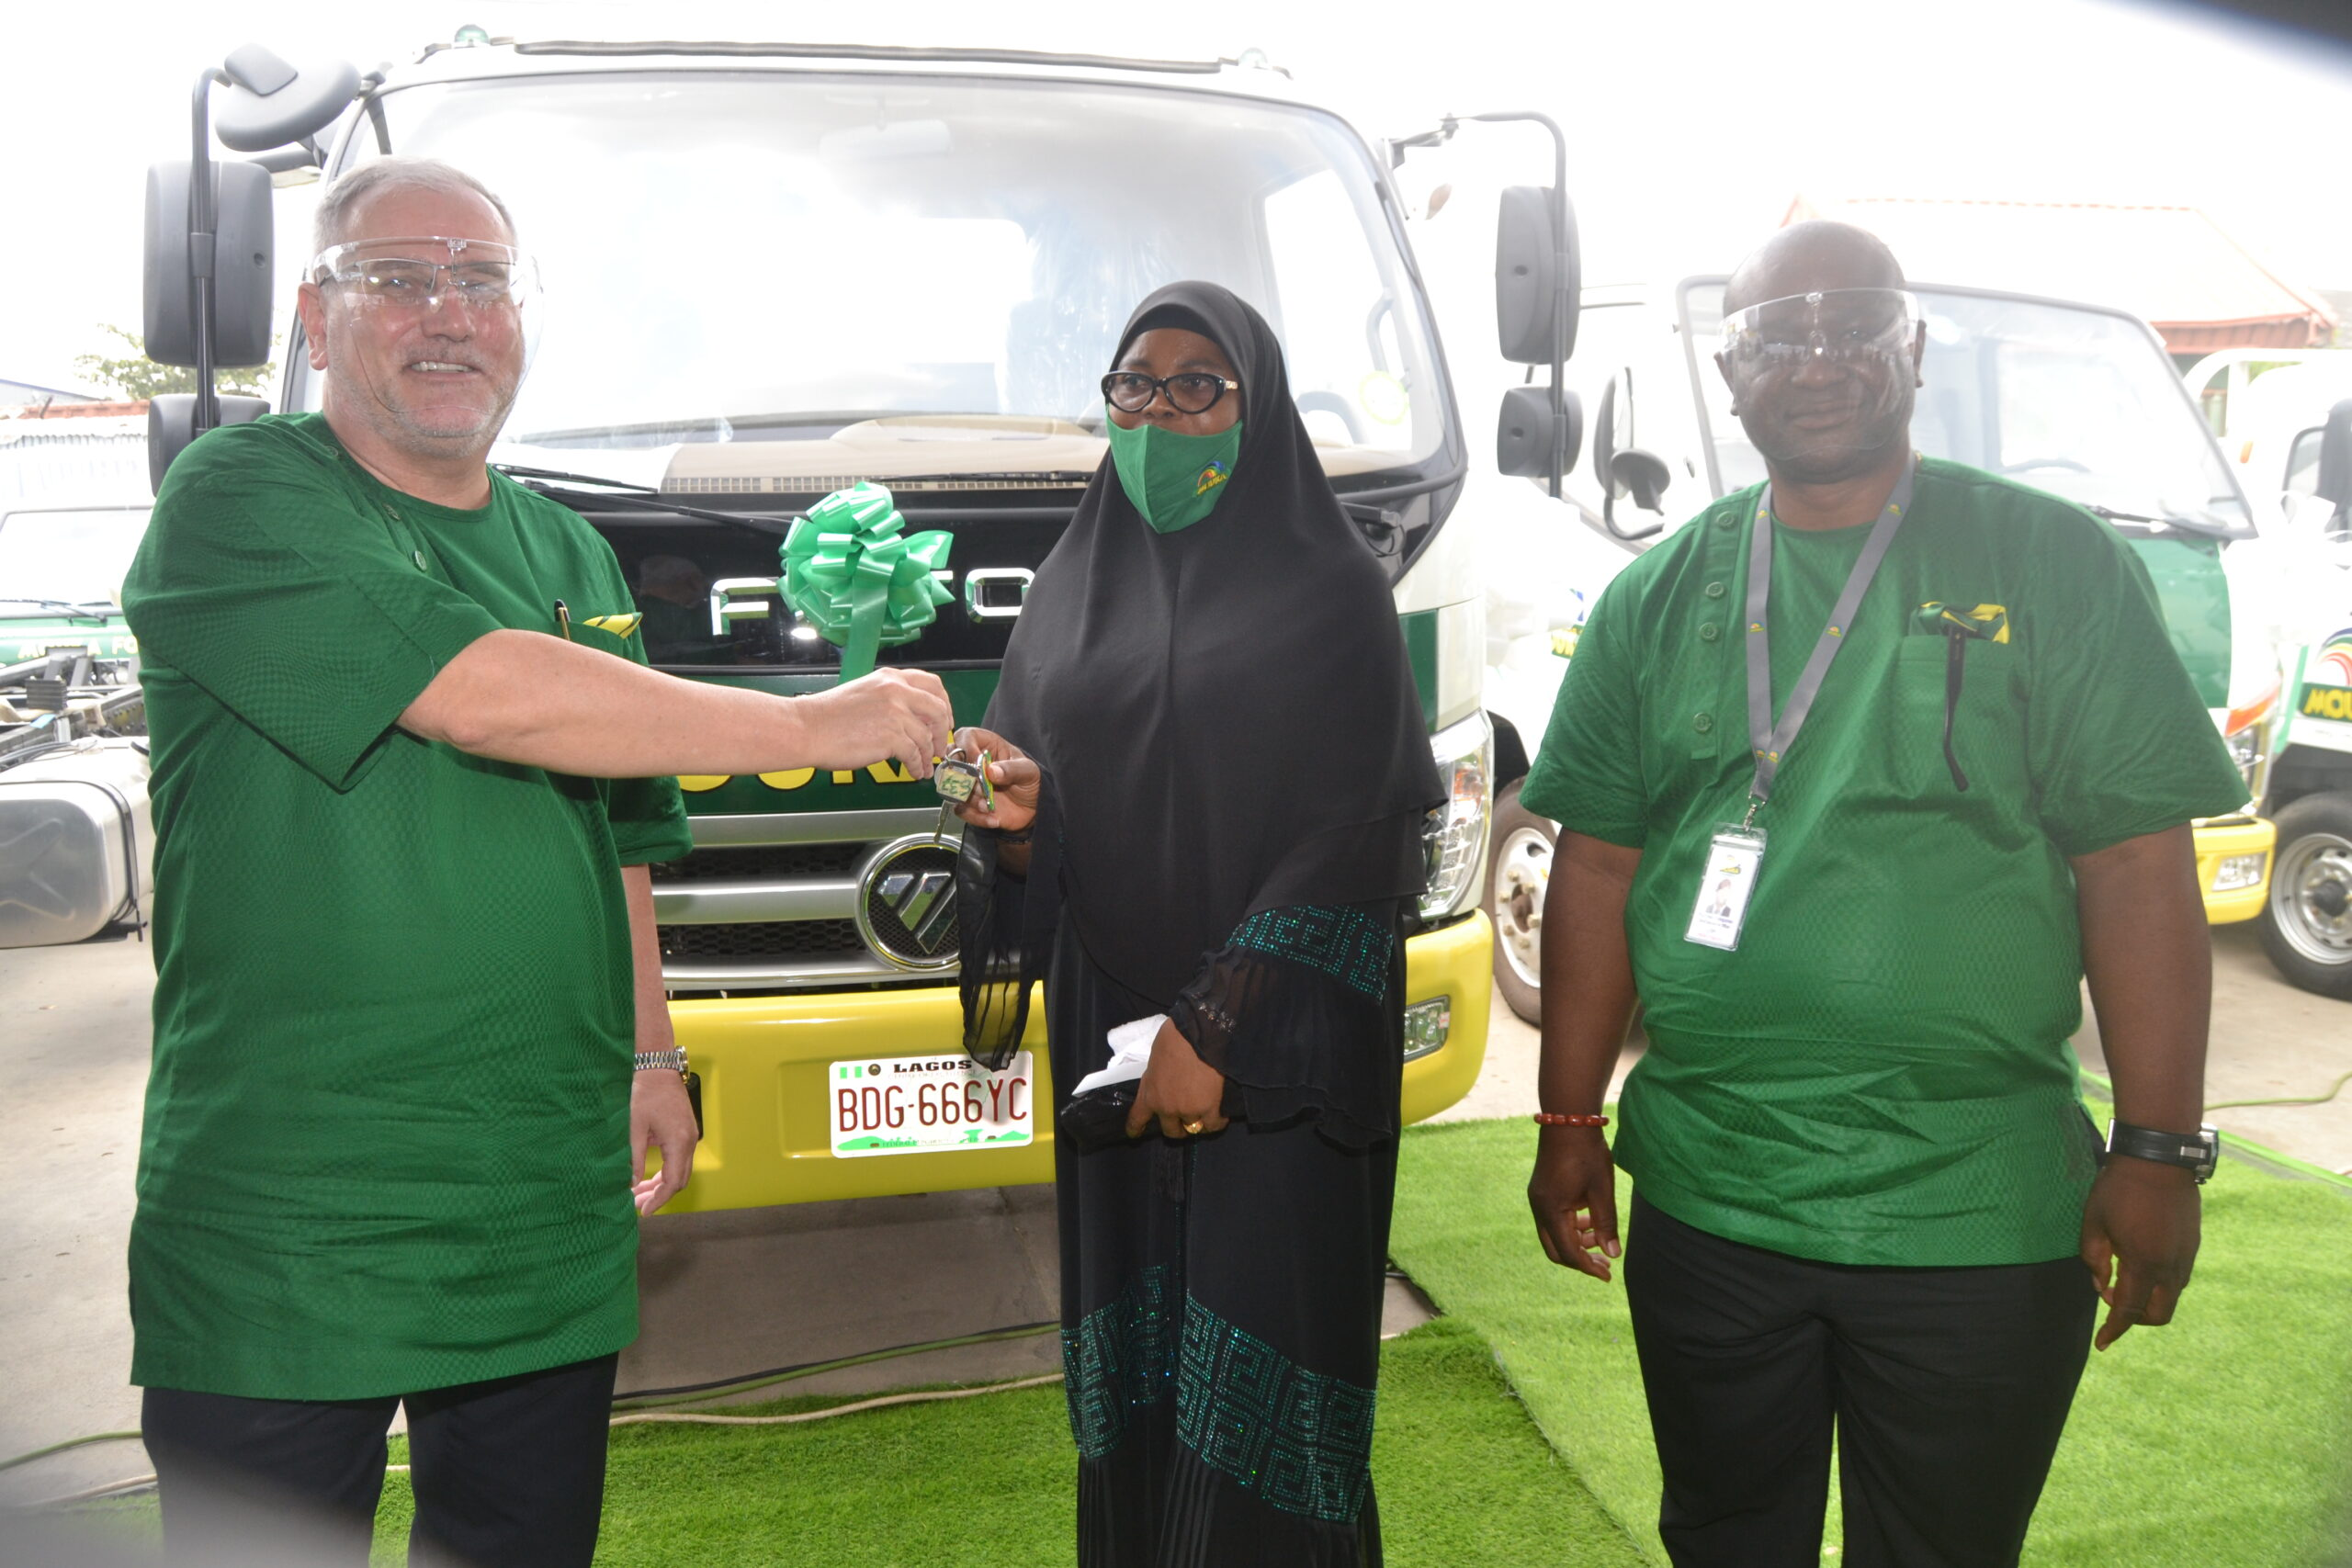 Mouka Award Brandspurng Mouka Gives Out 54 Trucks to Business Partners in a Jiffy, Encourages Steadfastness (Photos)